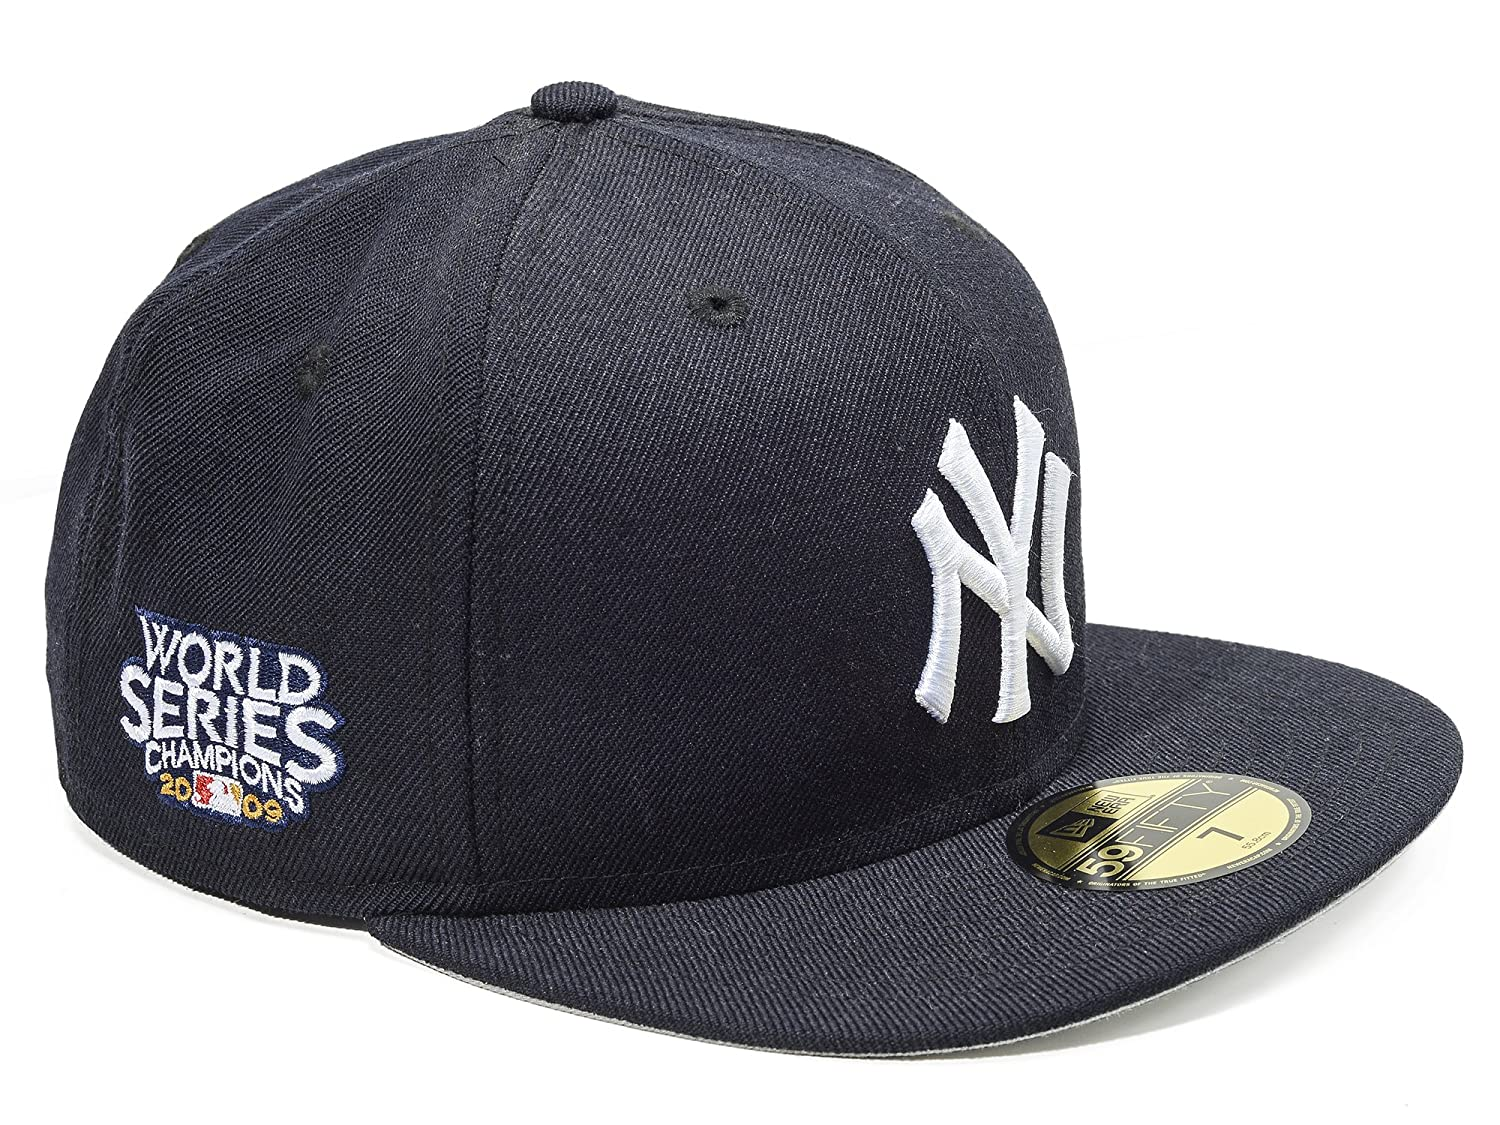 4e504c228a1 ... coupon code for new era 59fifty new york yankees fitted hat cap 2009 world  series side